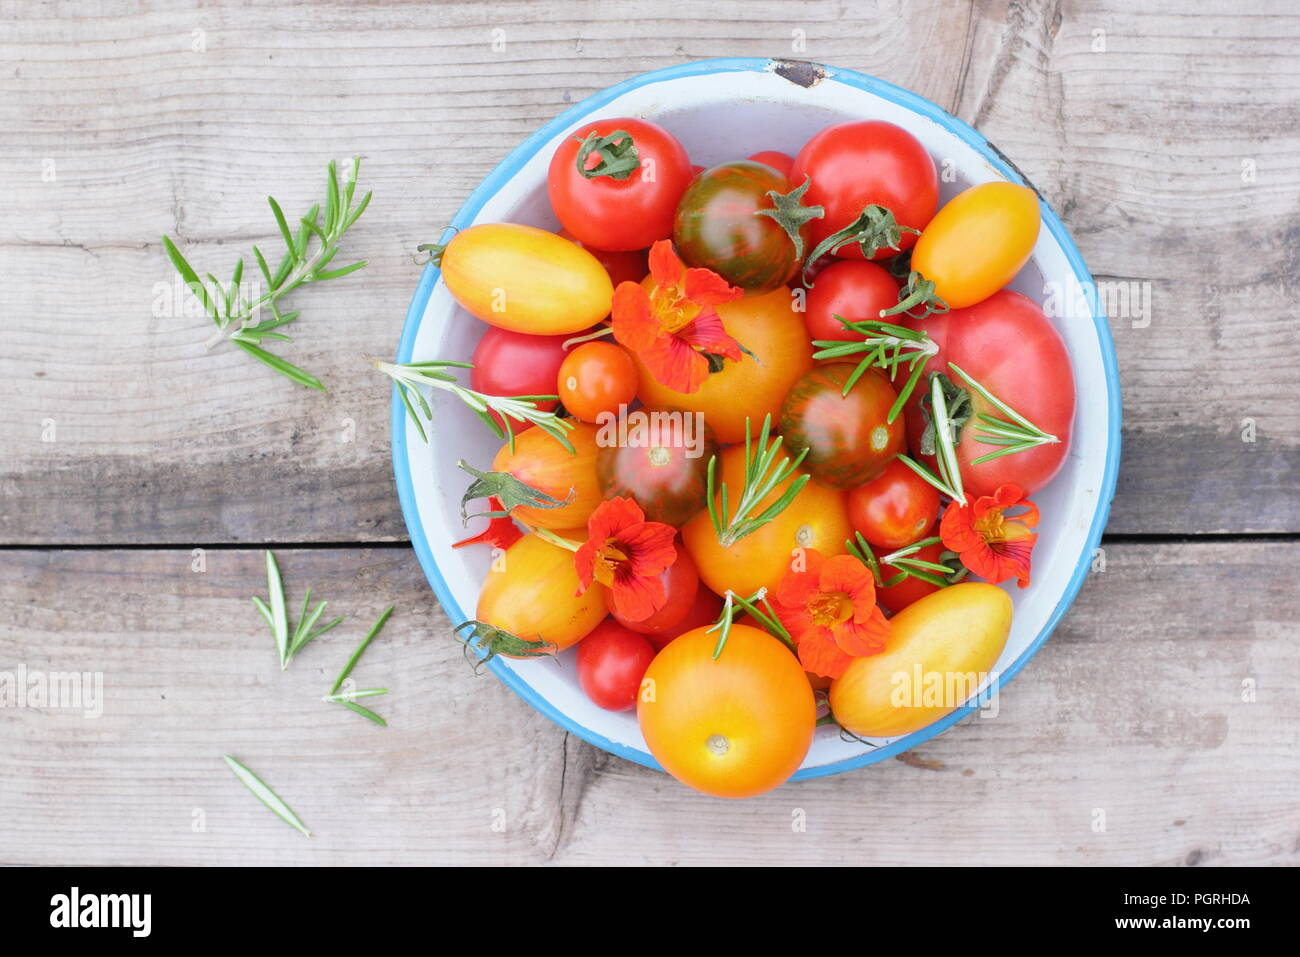 Solanum lycopersicum. Freshly harvested varieties of homegrown heirloom tomatoes with edible flowers, nasturtium and rosemary in enamel dish - Stock Image